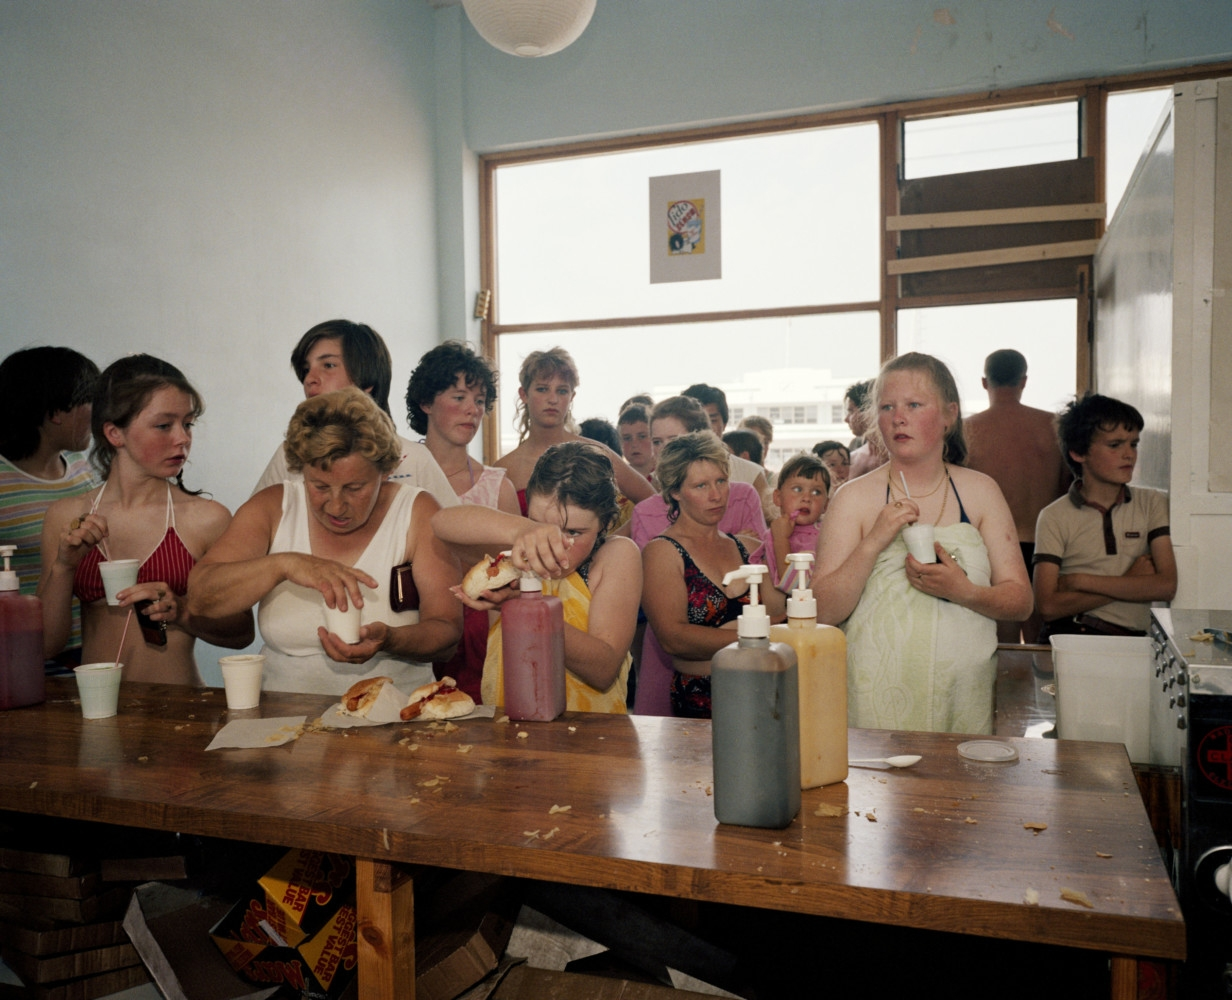 Martin Parr, Untitled (Plate 24) from The Last Resort, 1983-86